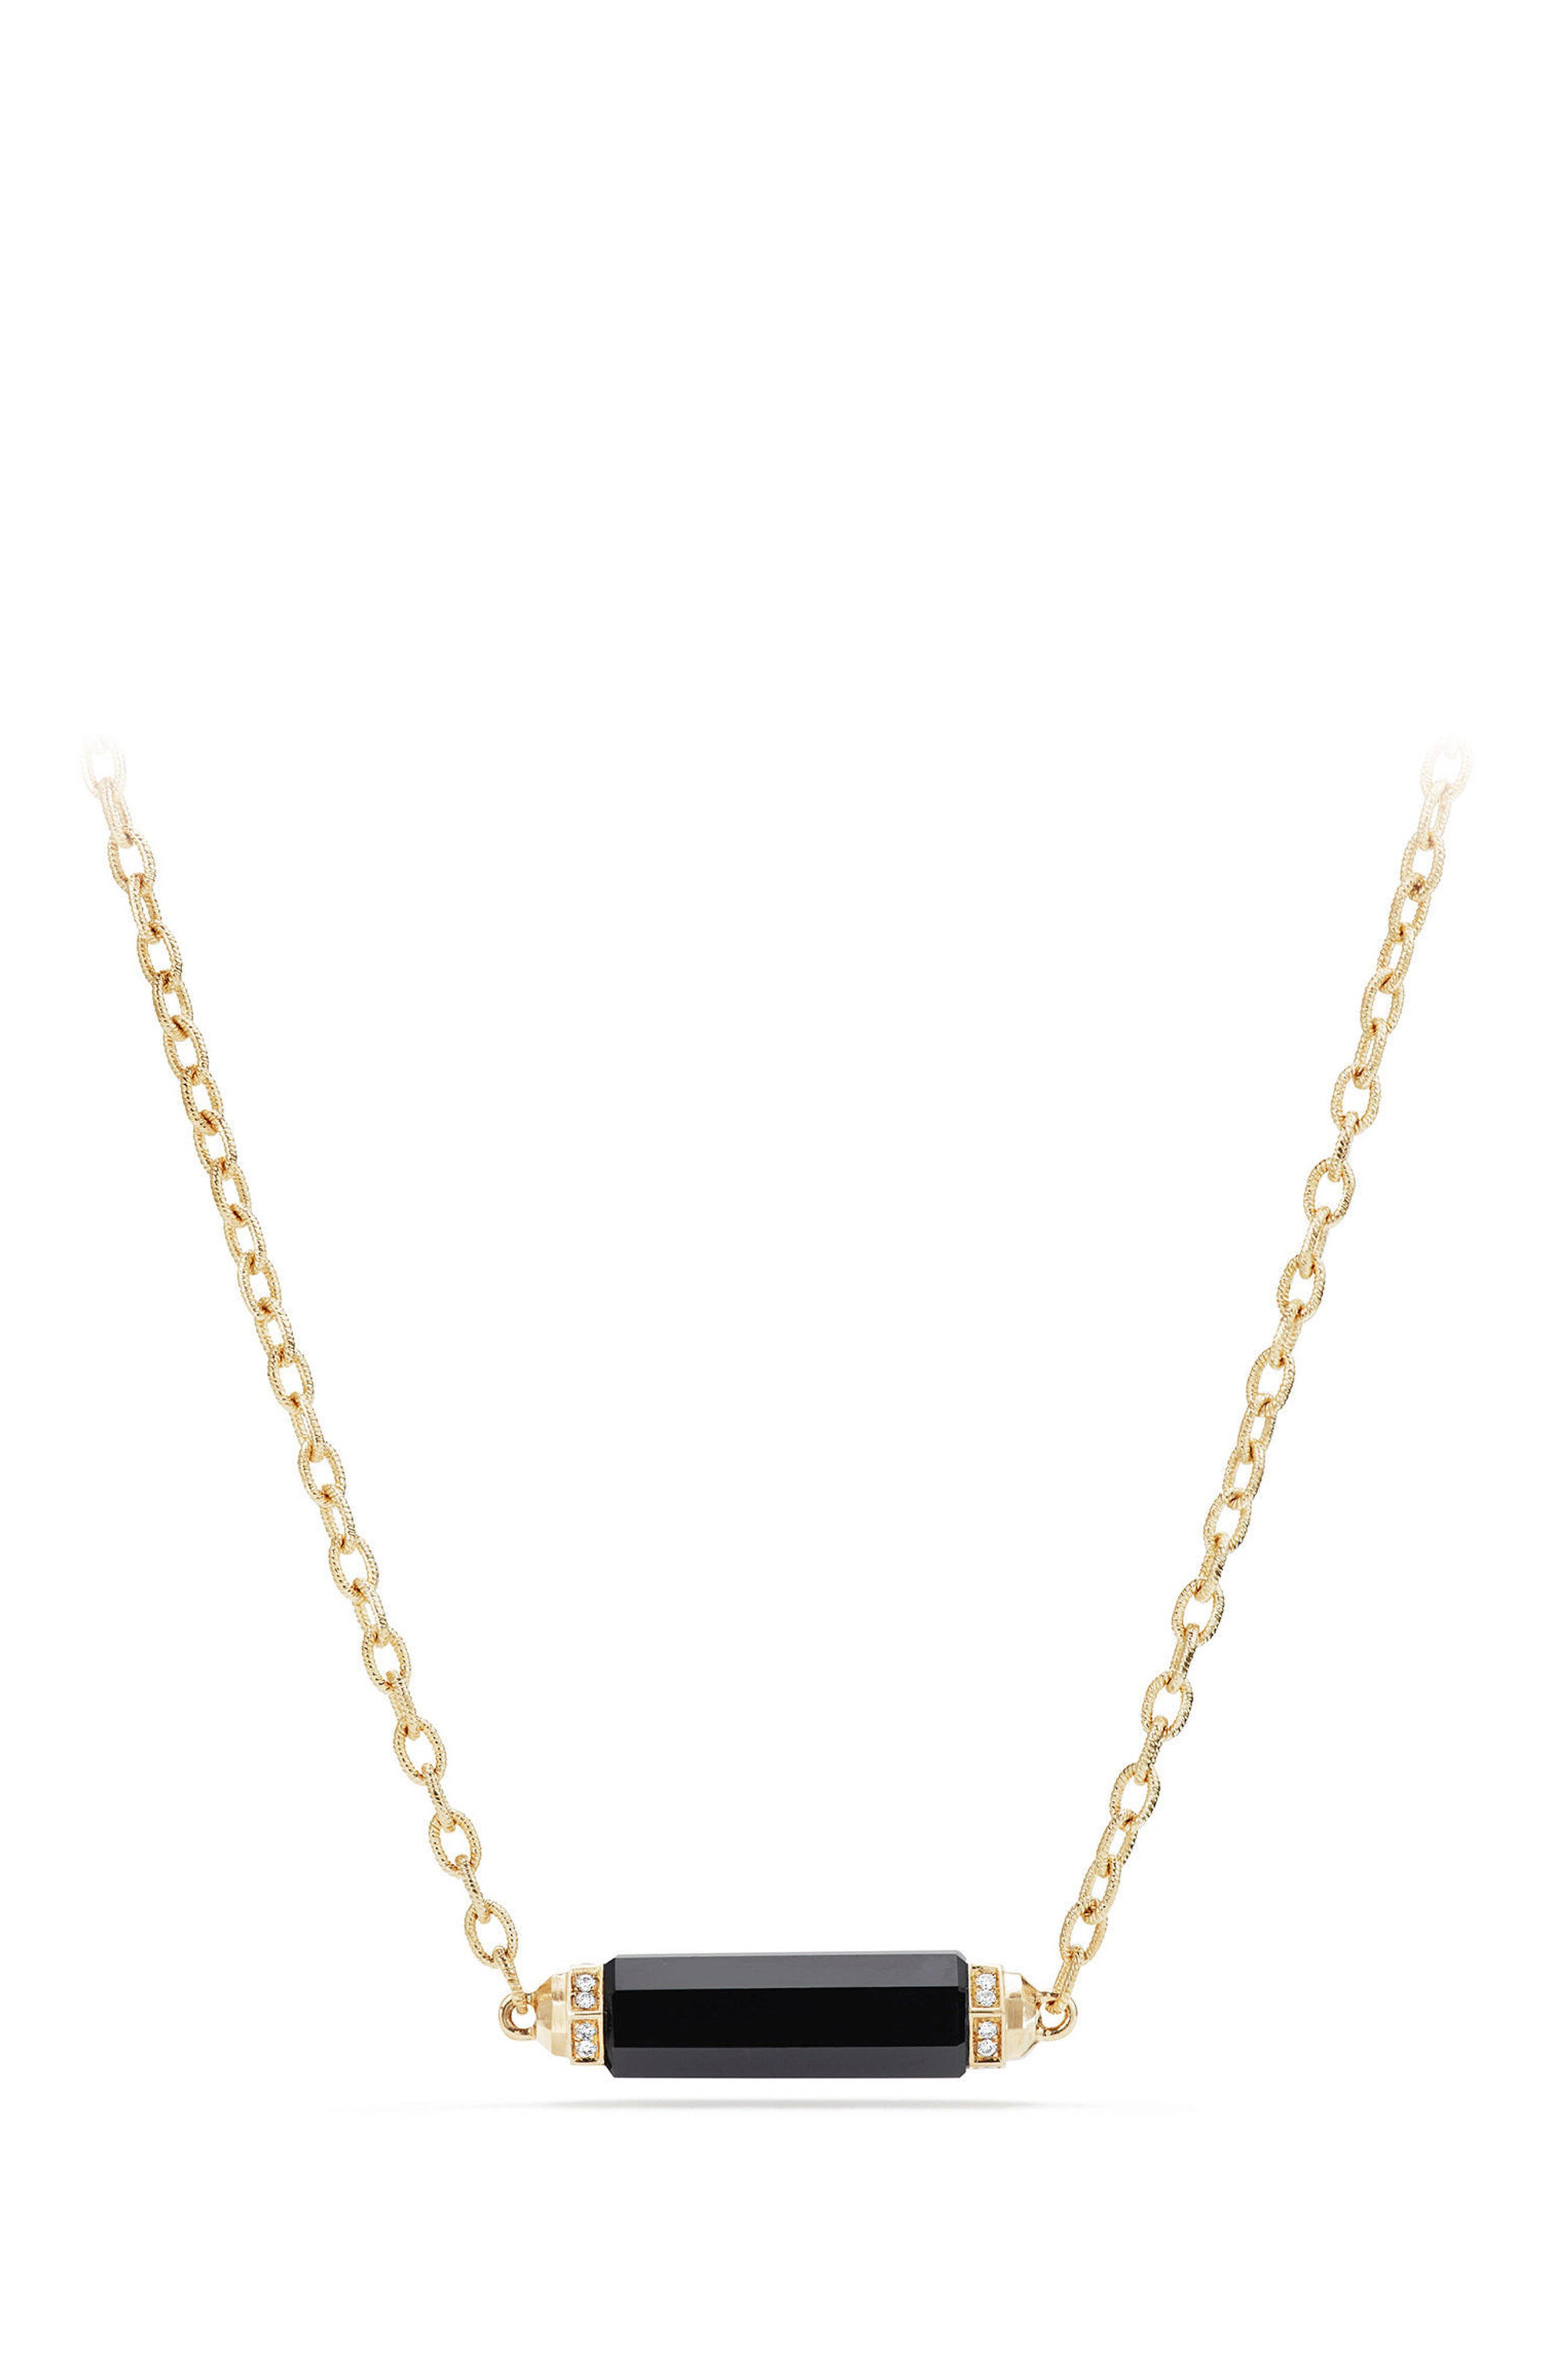 Barrels Single Station Necklace with Diamonds in 18K Gold,                             Main thumbnail 1, color,                             BLACK ONYX